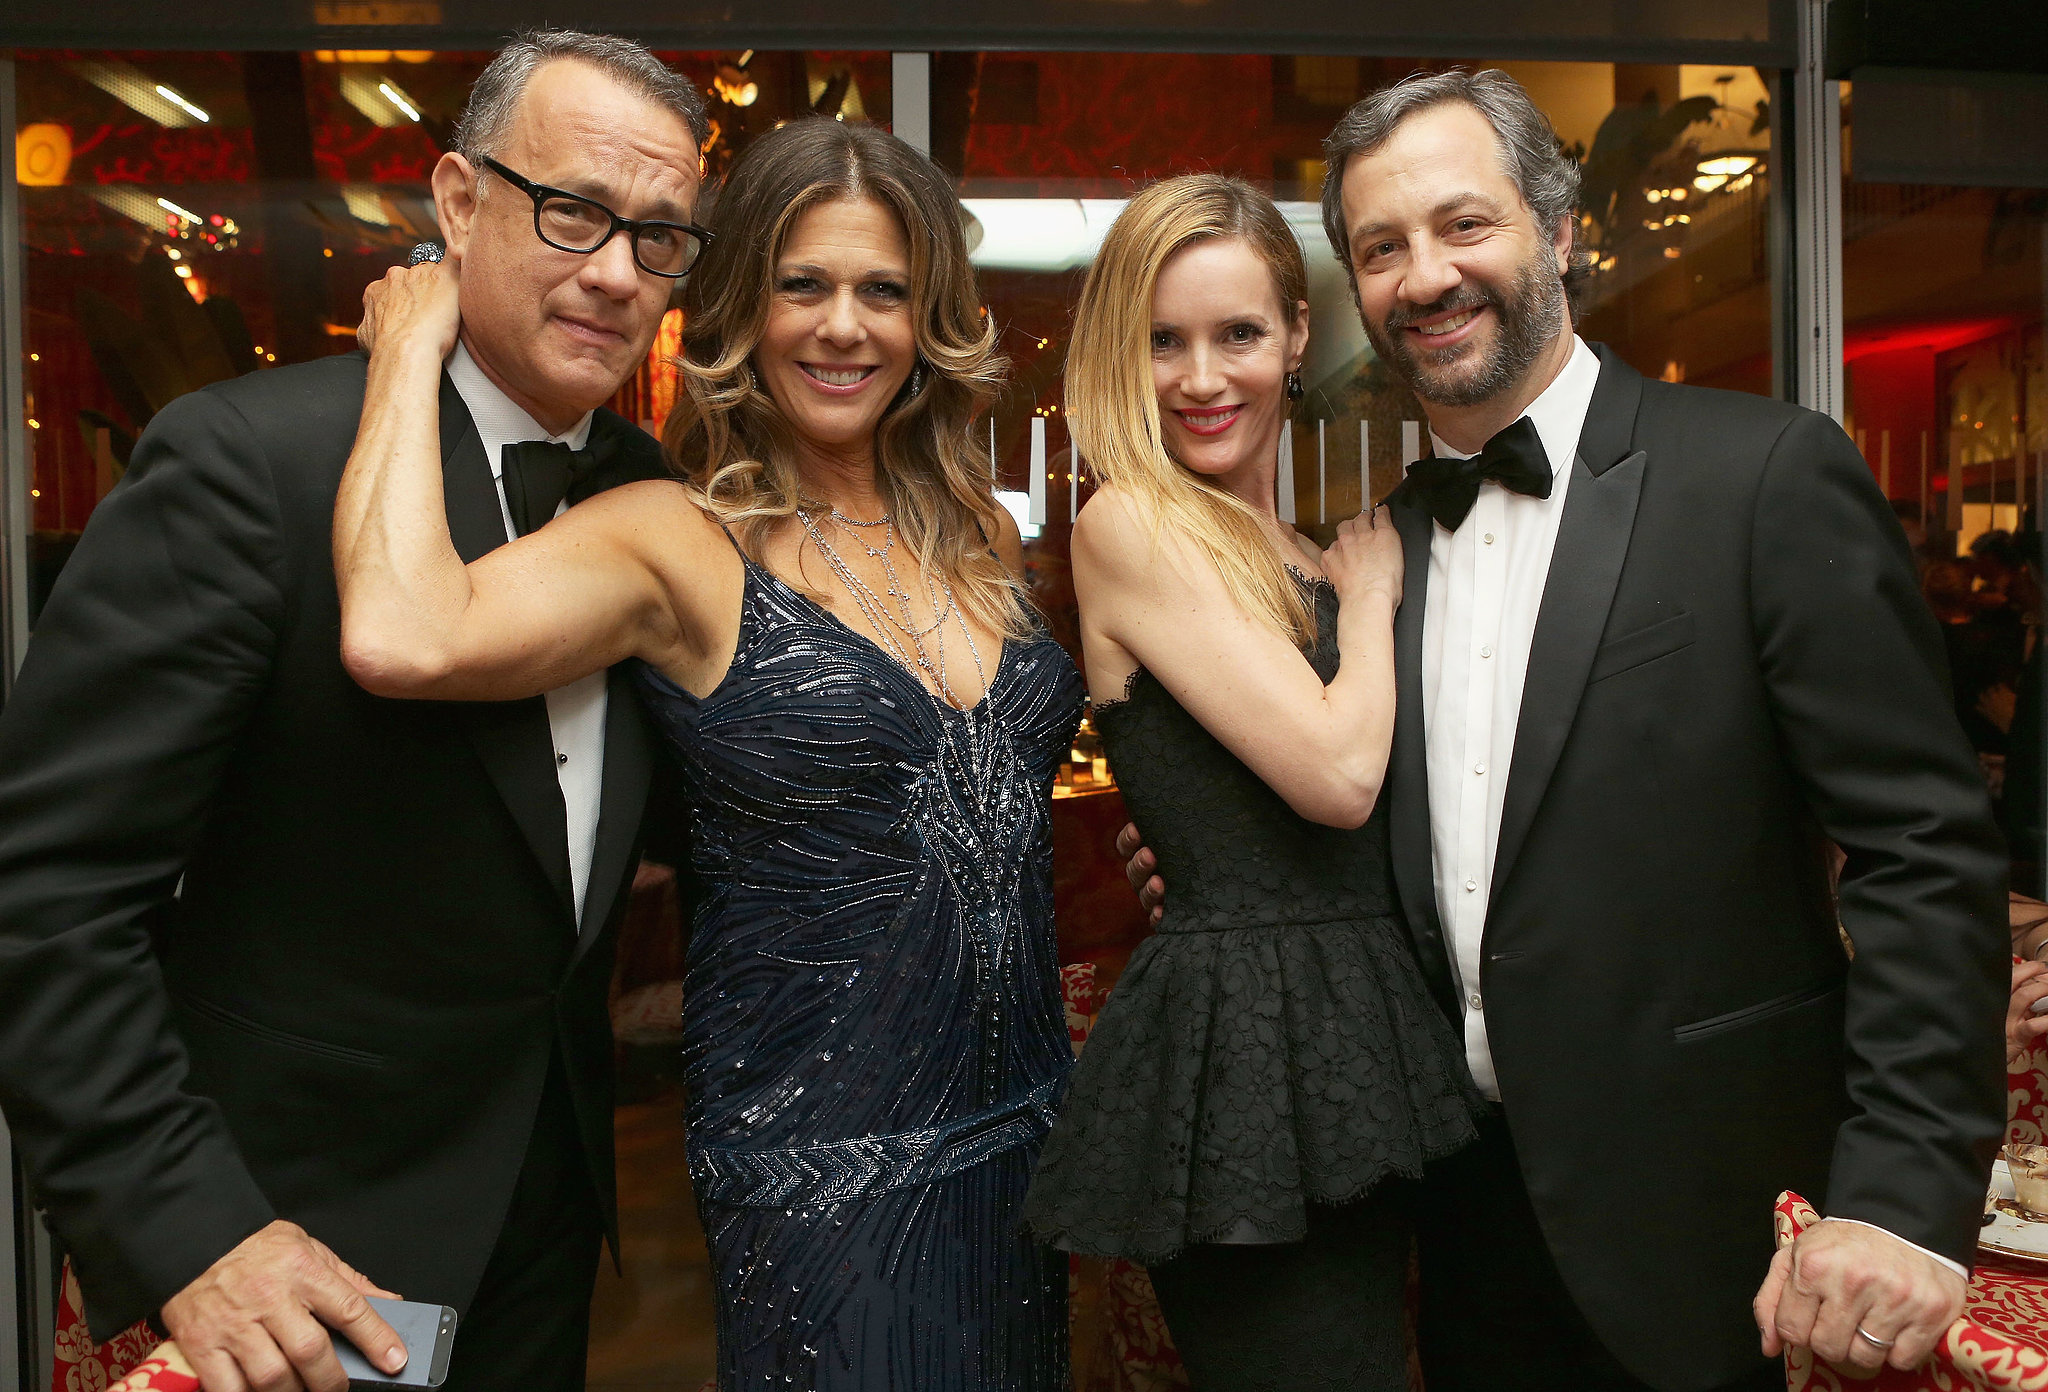 Rita Wilson and Leslie Mann partied with their men, Tom Hanks and Judd Apatow, at HBO's post-Globes fete.